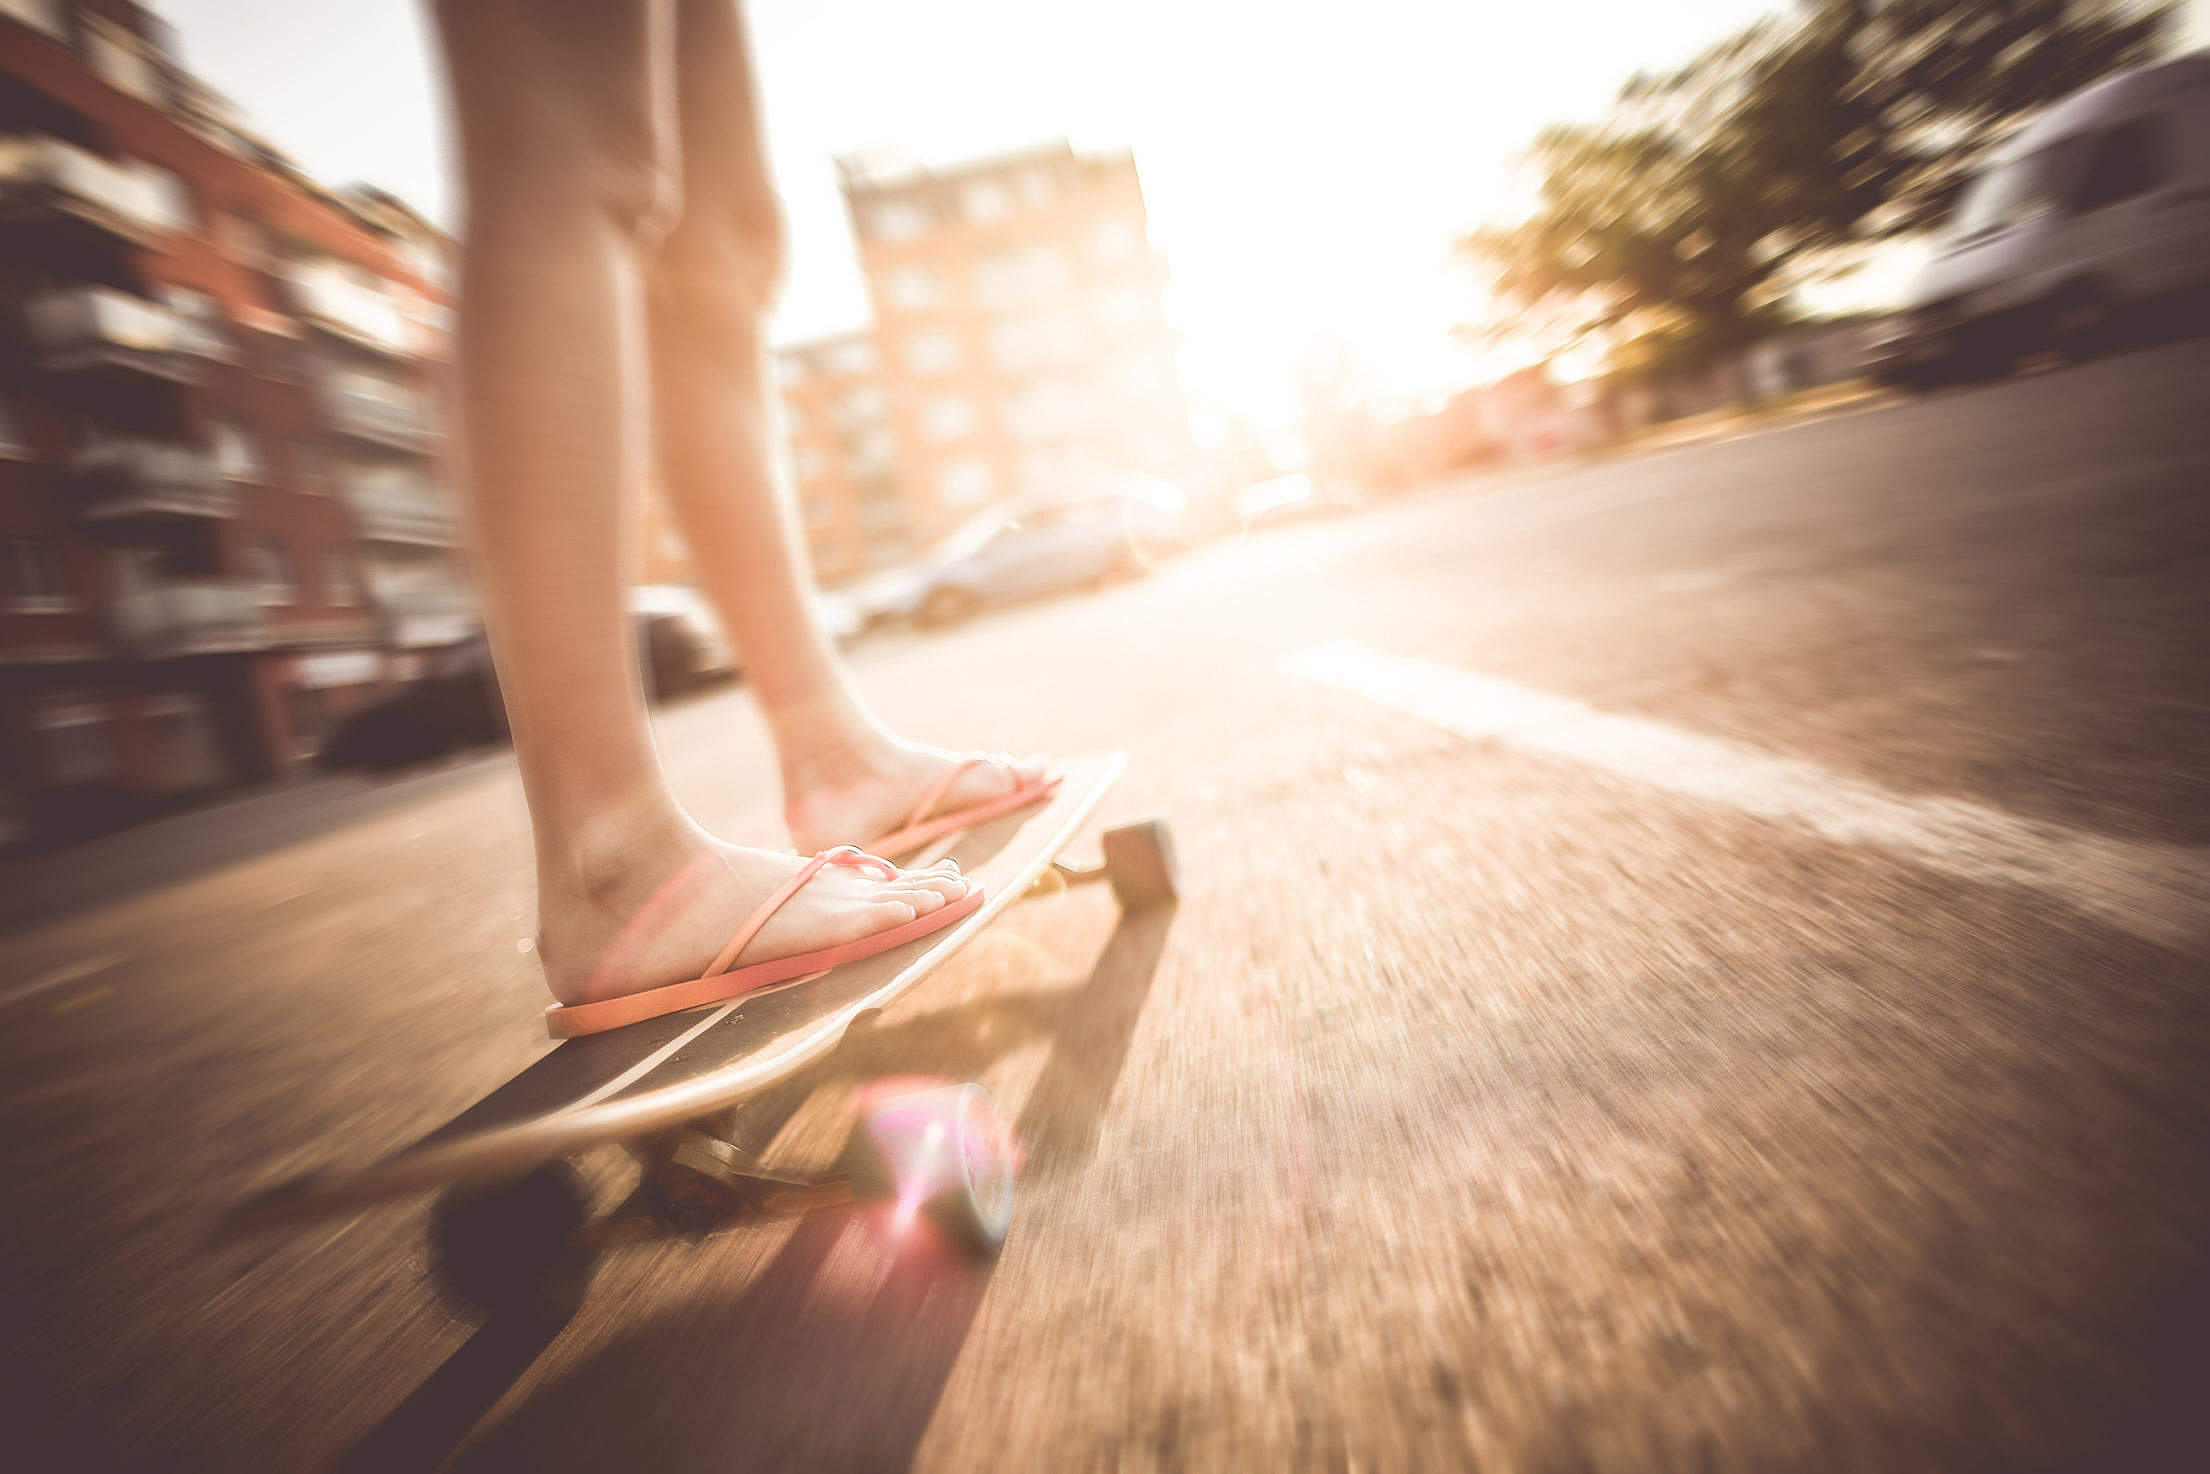 Crazy Girl Riding Her Longboard in Flip Flops Free Stock Photo